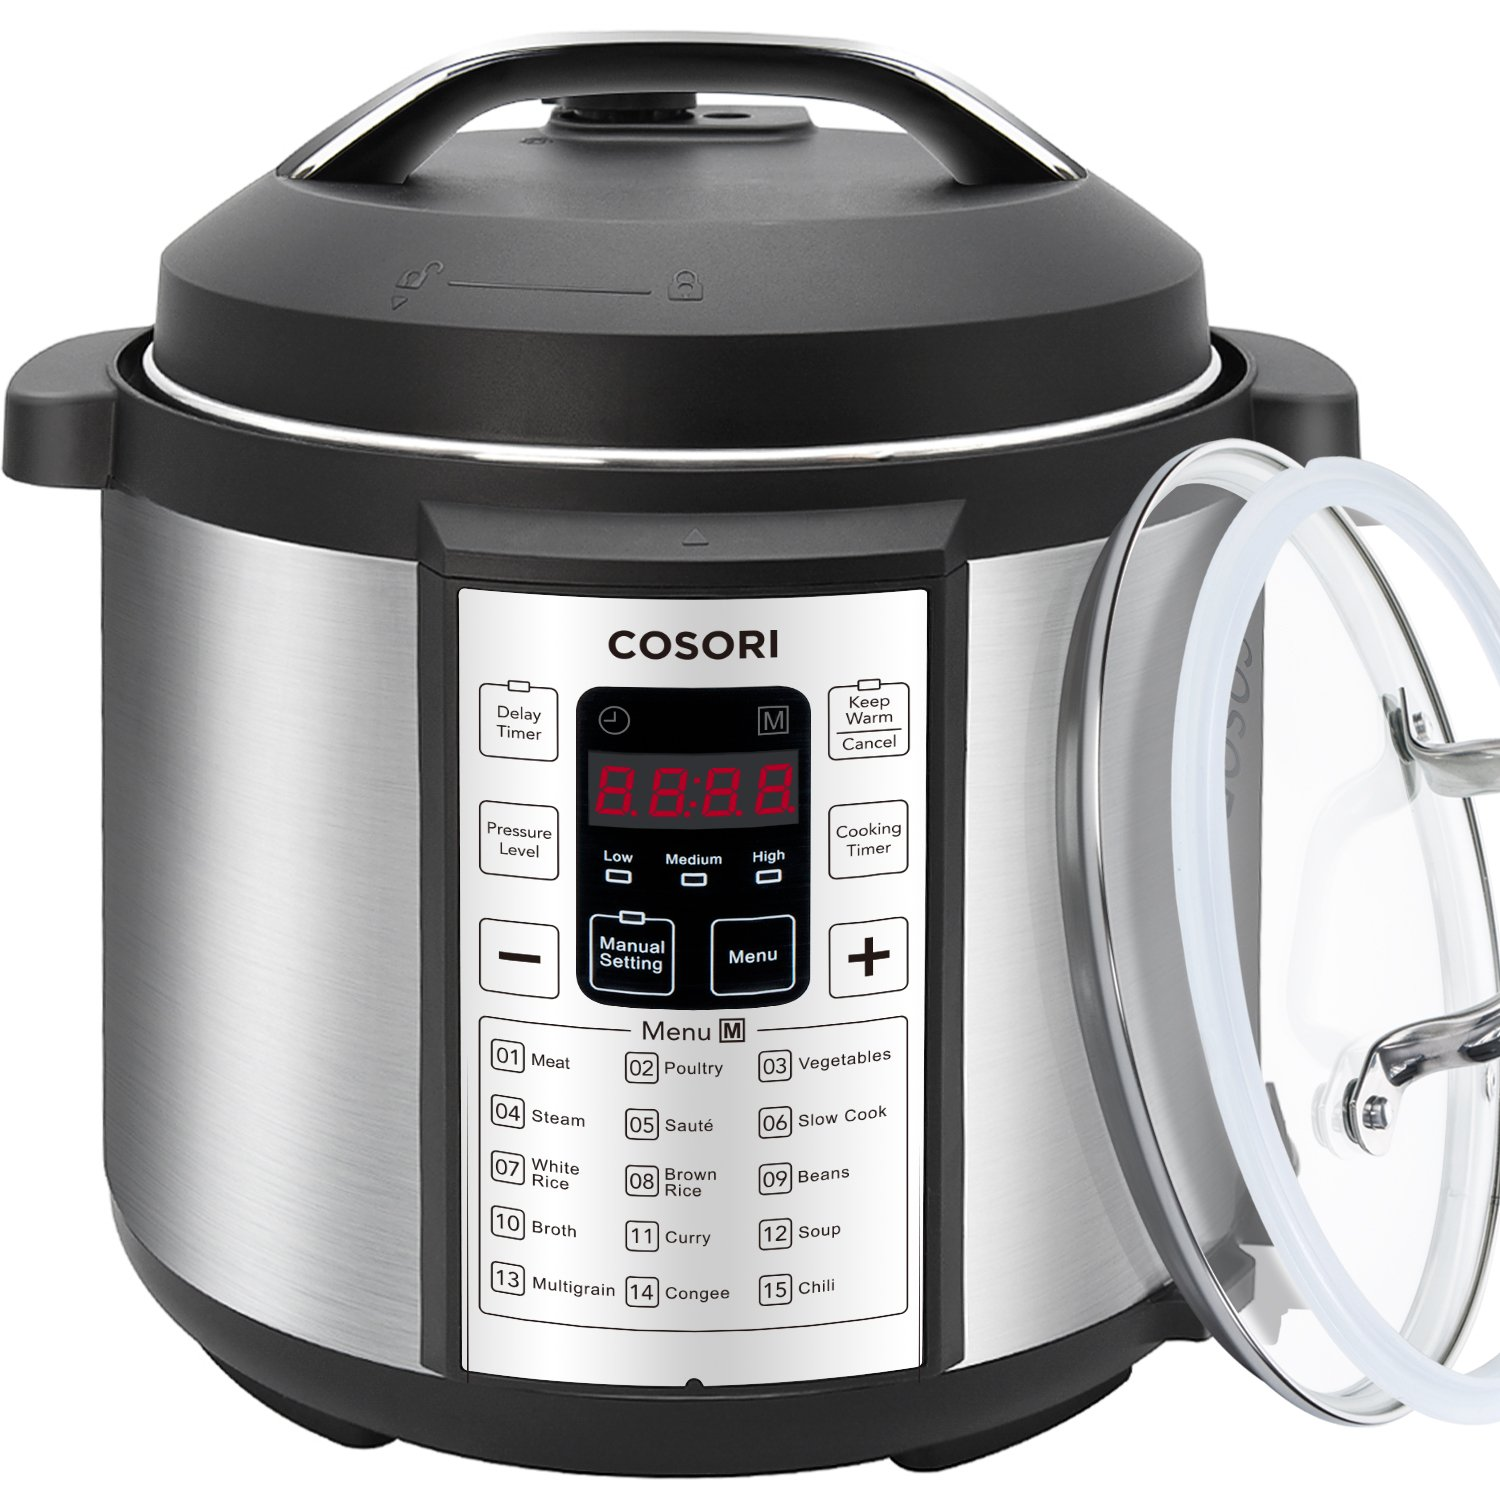 COSORI Electric Pressure Cooker 7-in-1 Multifunctional, with Tempered Glass Lid